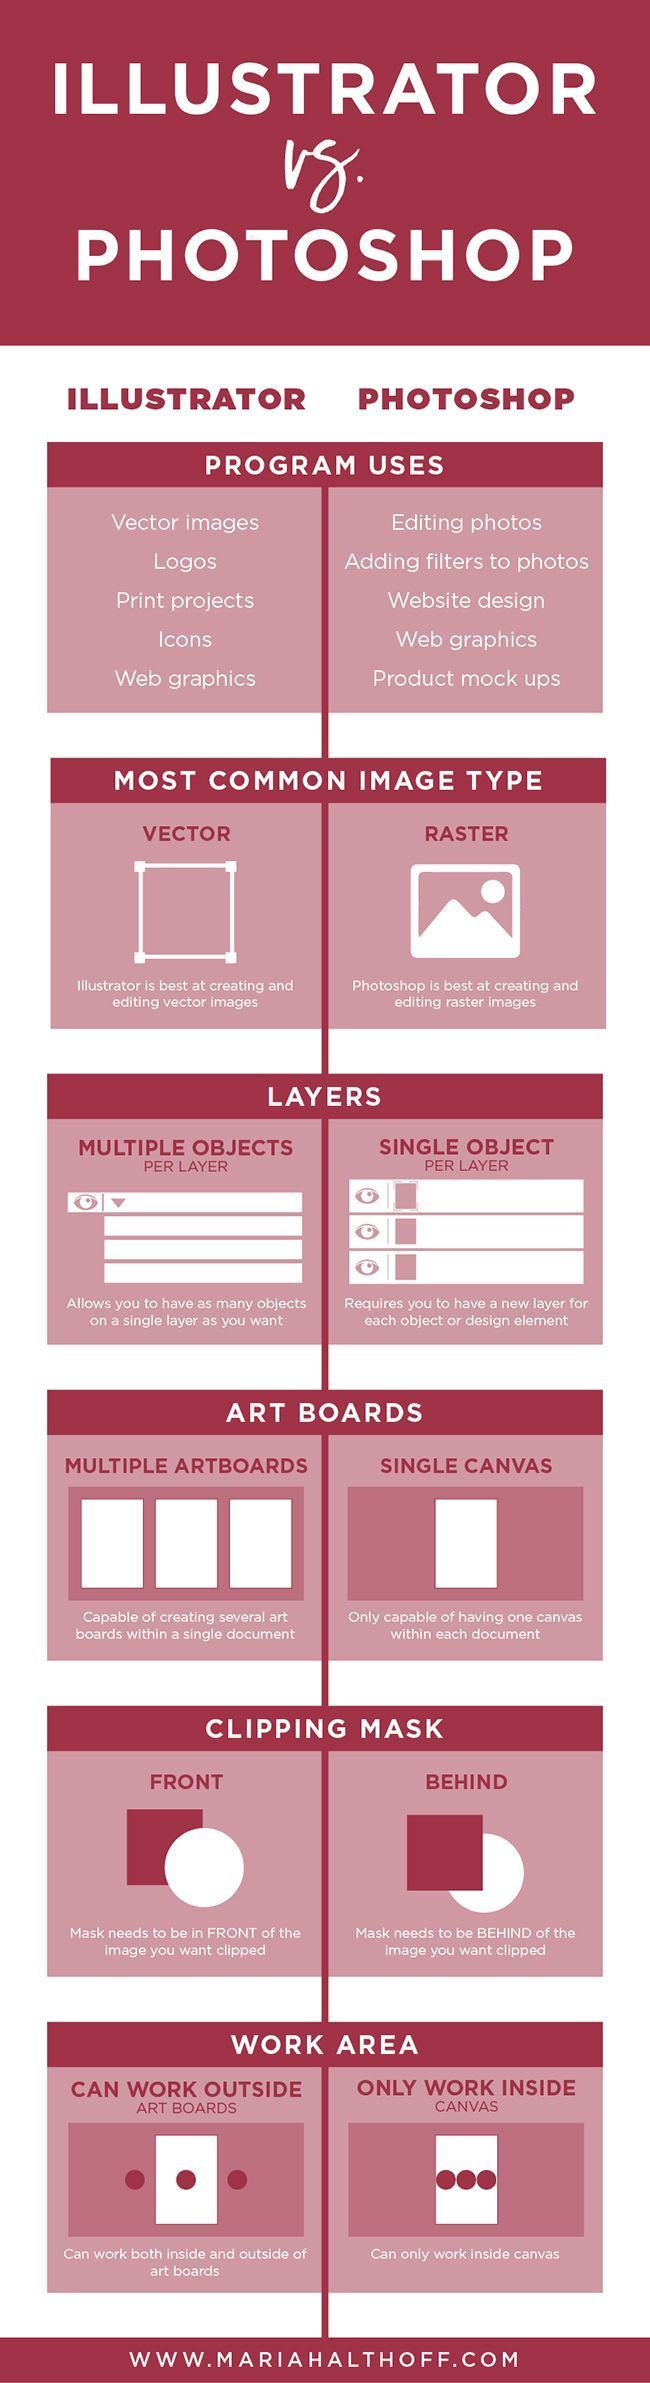 Should you be using Adobe Illustrator or Photoshop to create graphics for your business or blog? I've put together a side-by-side comparison for you to easily decide which program is best for you! Pin this infographic to refer to later!